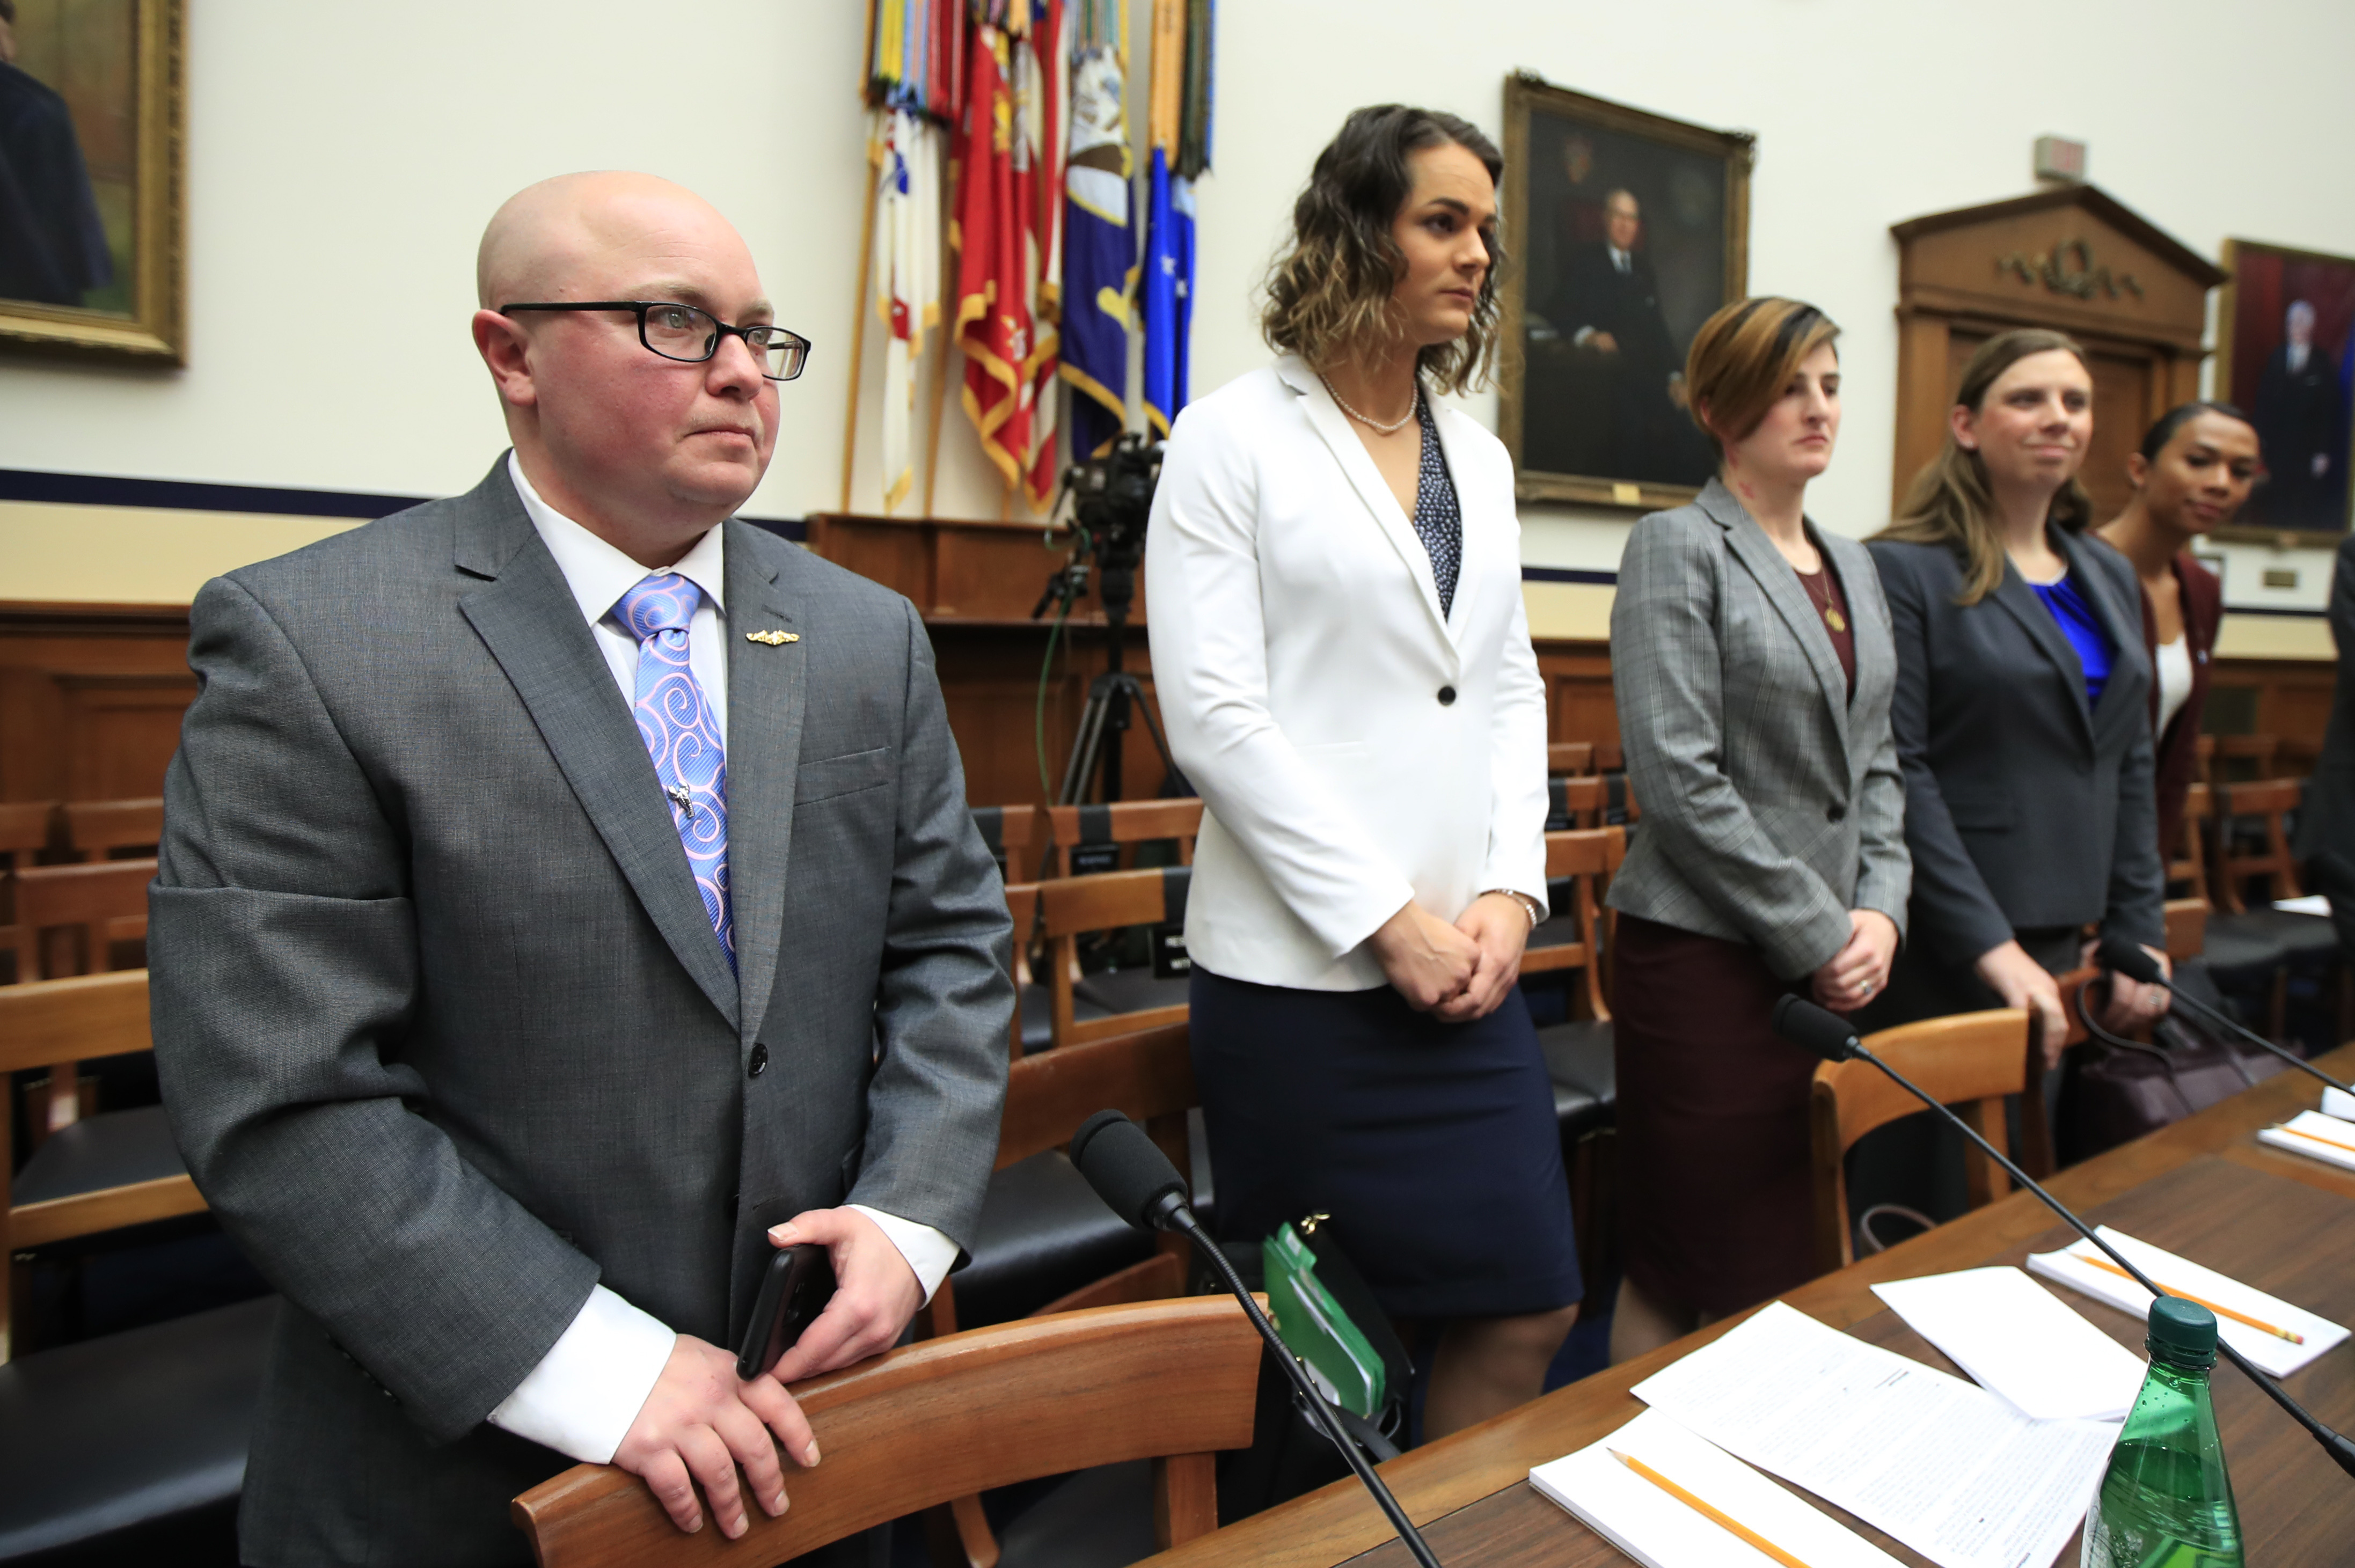 In this Feb. 27, 2019, file photo, from left, transgender military members Navy Lt. Cmdr. Blake Dremann, Army Capt. Alivia Stehlik, Army Capt. Jennifer Peace, Army Staff Sgt. Patricia King and Navy Petty Officer Third Class Akira Wyatt, listen before the start of a House Armed Services Subcommittee on Military Personnel hearing on Capitol Hill in Washington. (Manuel Balce Ceneta/AP)